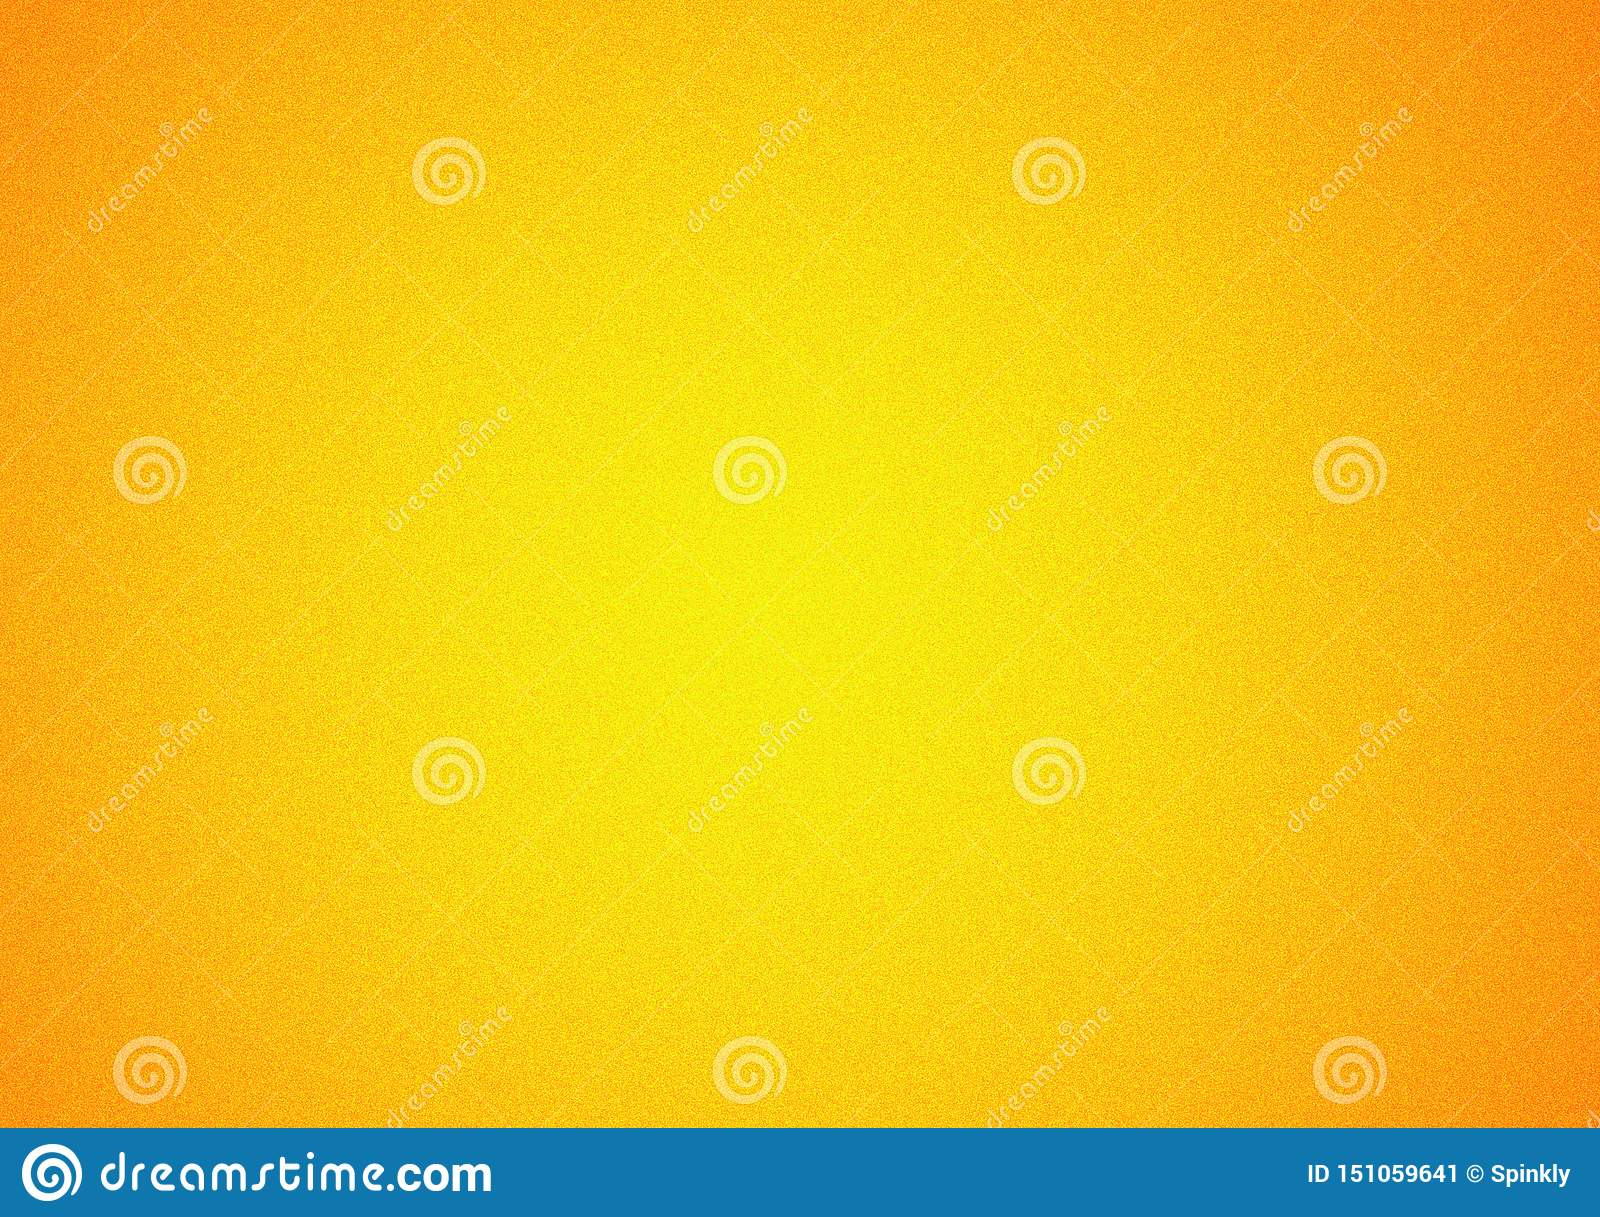 orange yellow plain vignette background gradient wallpaper orange yellow plain vignette background gradient wallpaper use 151059641